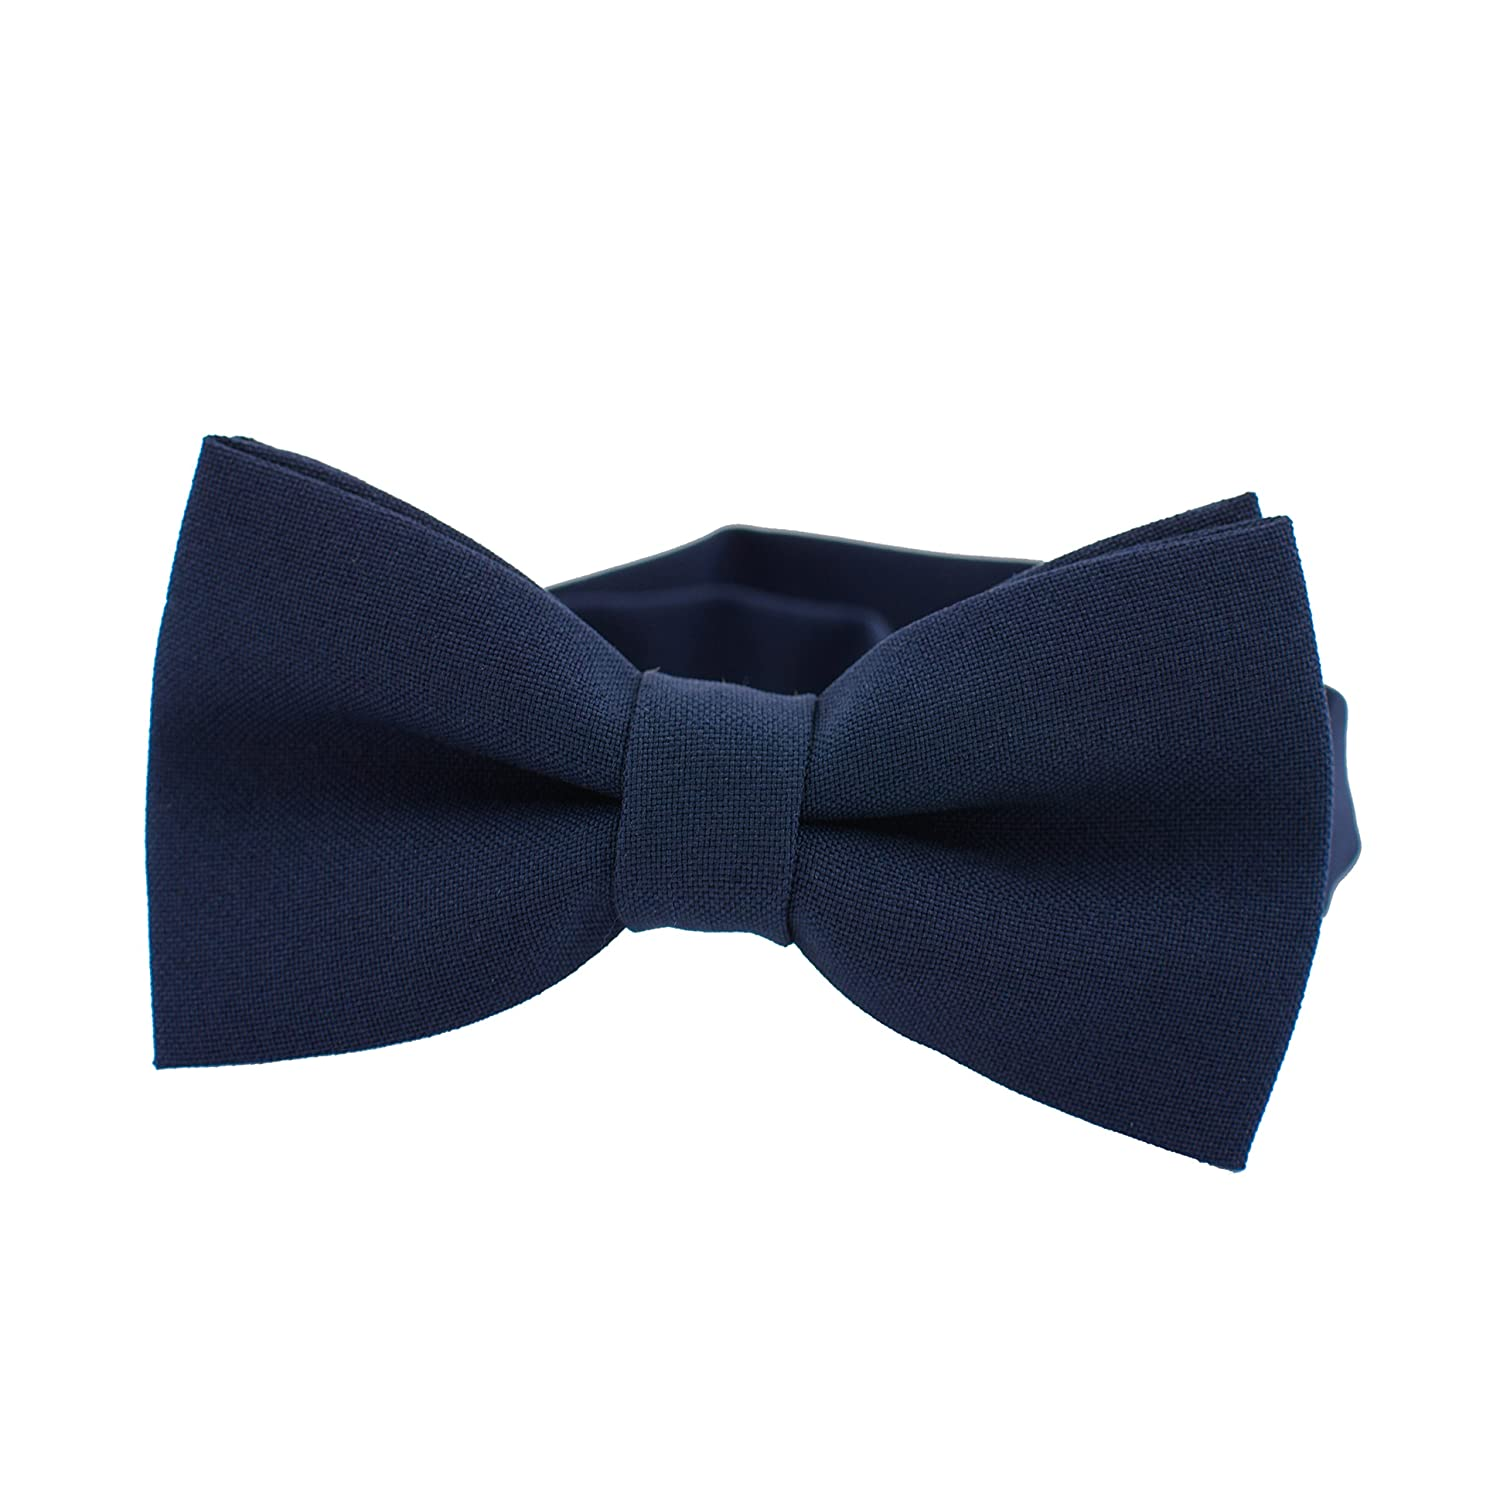 Large, Denim Classic Pre-Tied Bow Tie Formal Solid Tuxedo by Bow Tie House